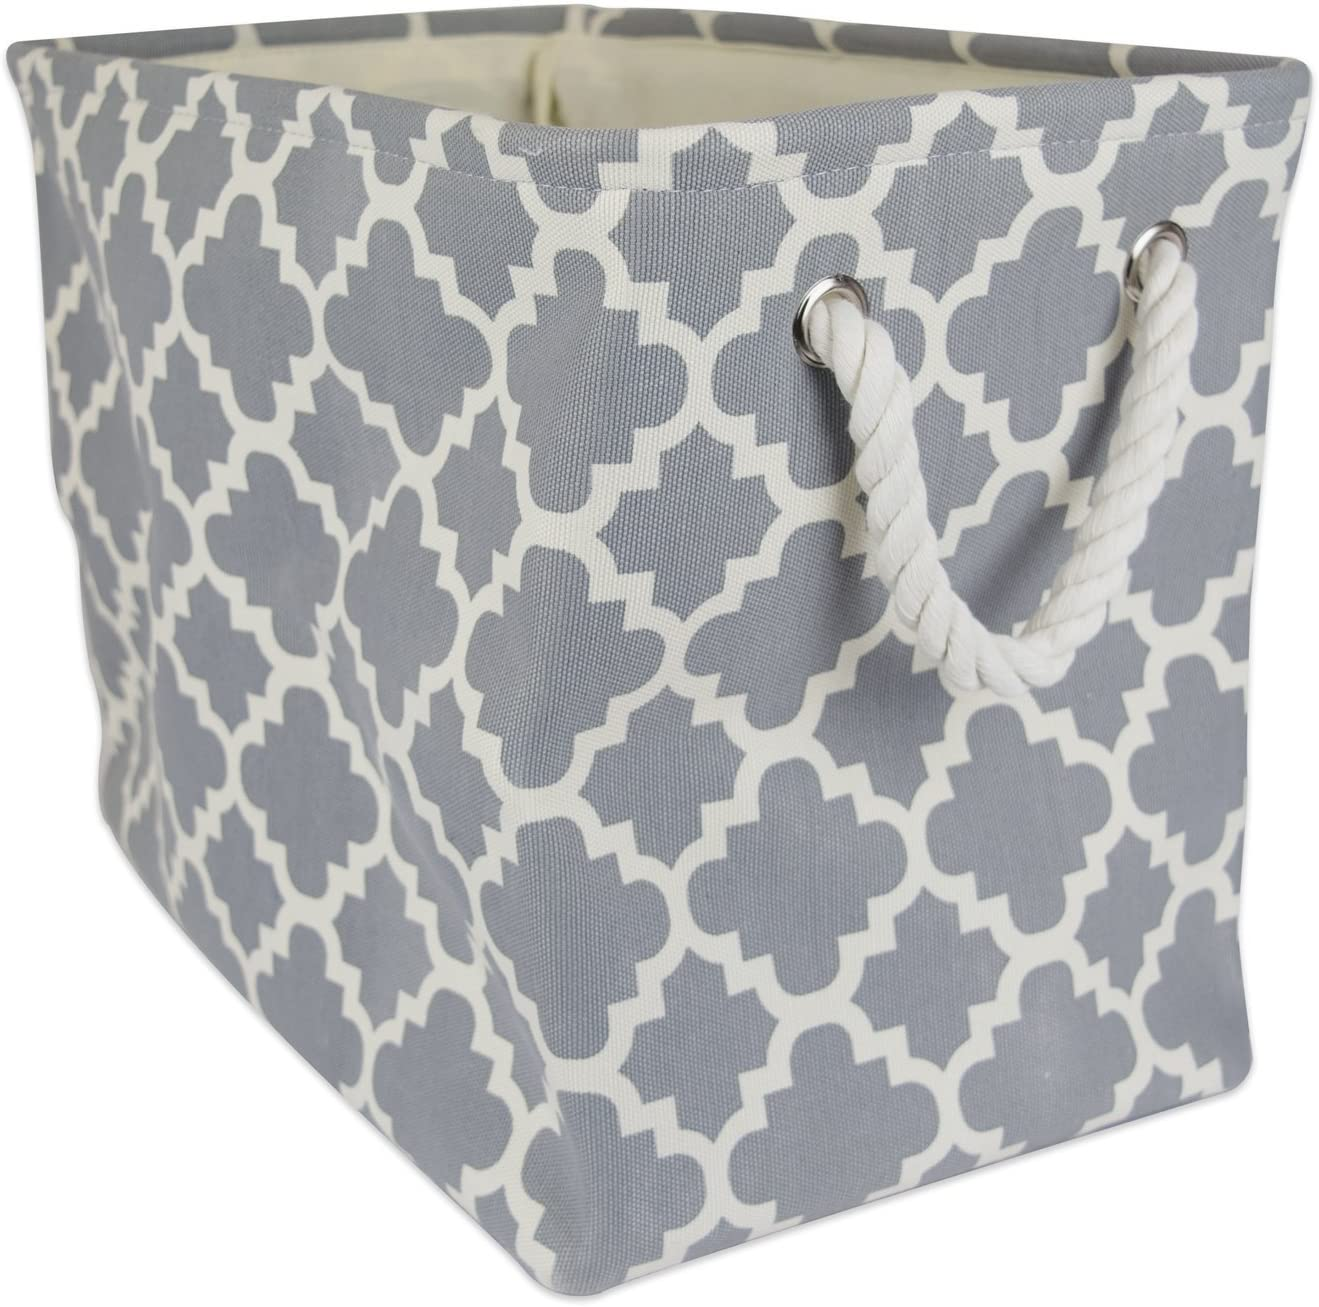 "DII Collapsible Polyester Storage Basket or Bin with Durable Cotton Handles, Home Organizer Solution for Office, Bedroom, Closet, Toys, Laundry (Small – 14x8x9""), Gray Lattice"